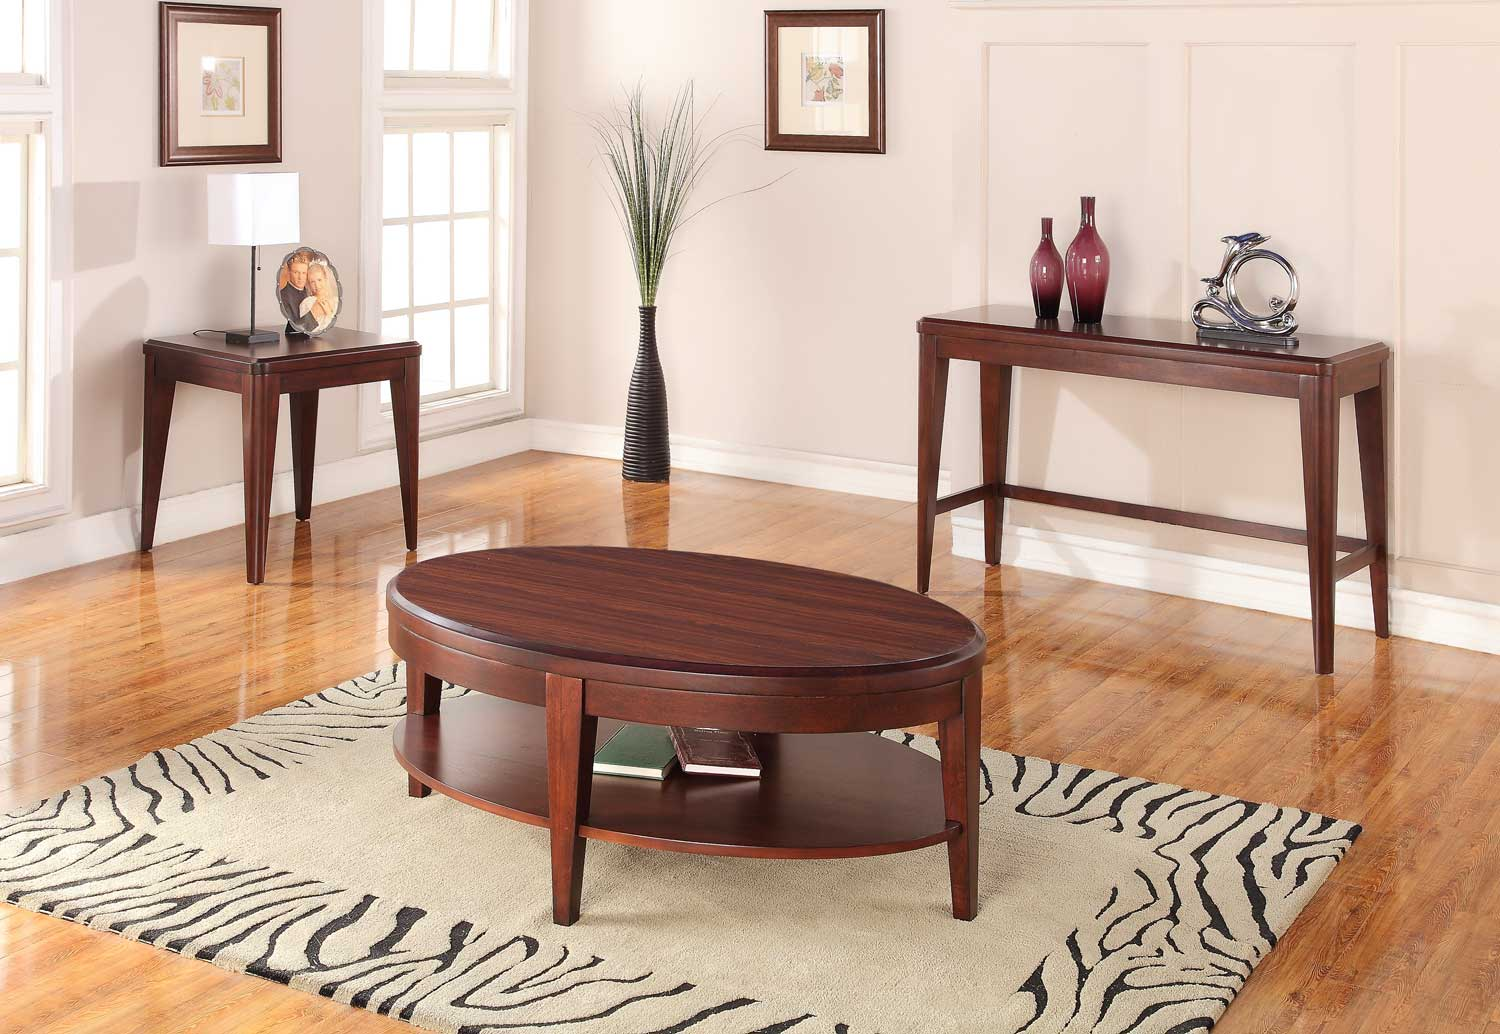 Homelegance Beaumont Occasional Table Set - Brown Cherry